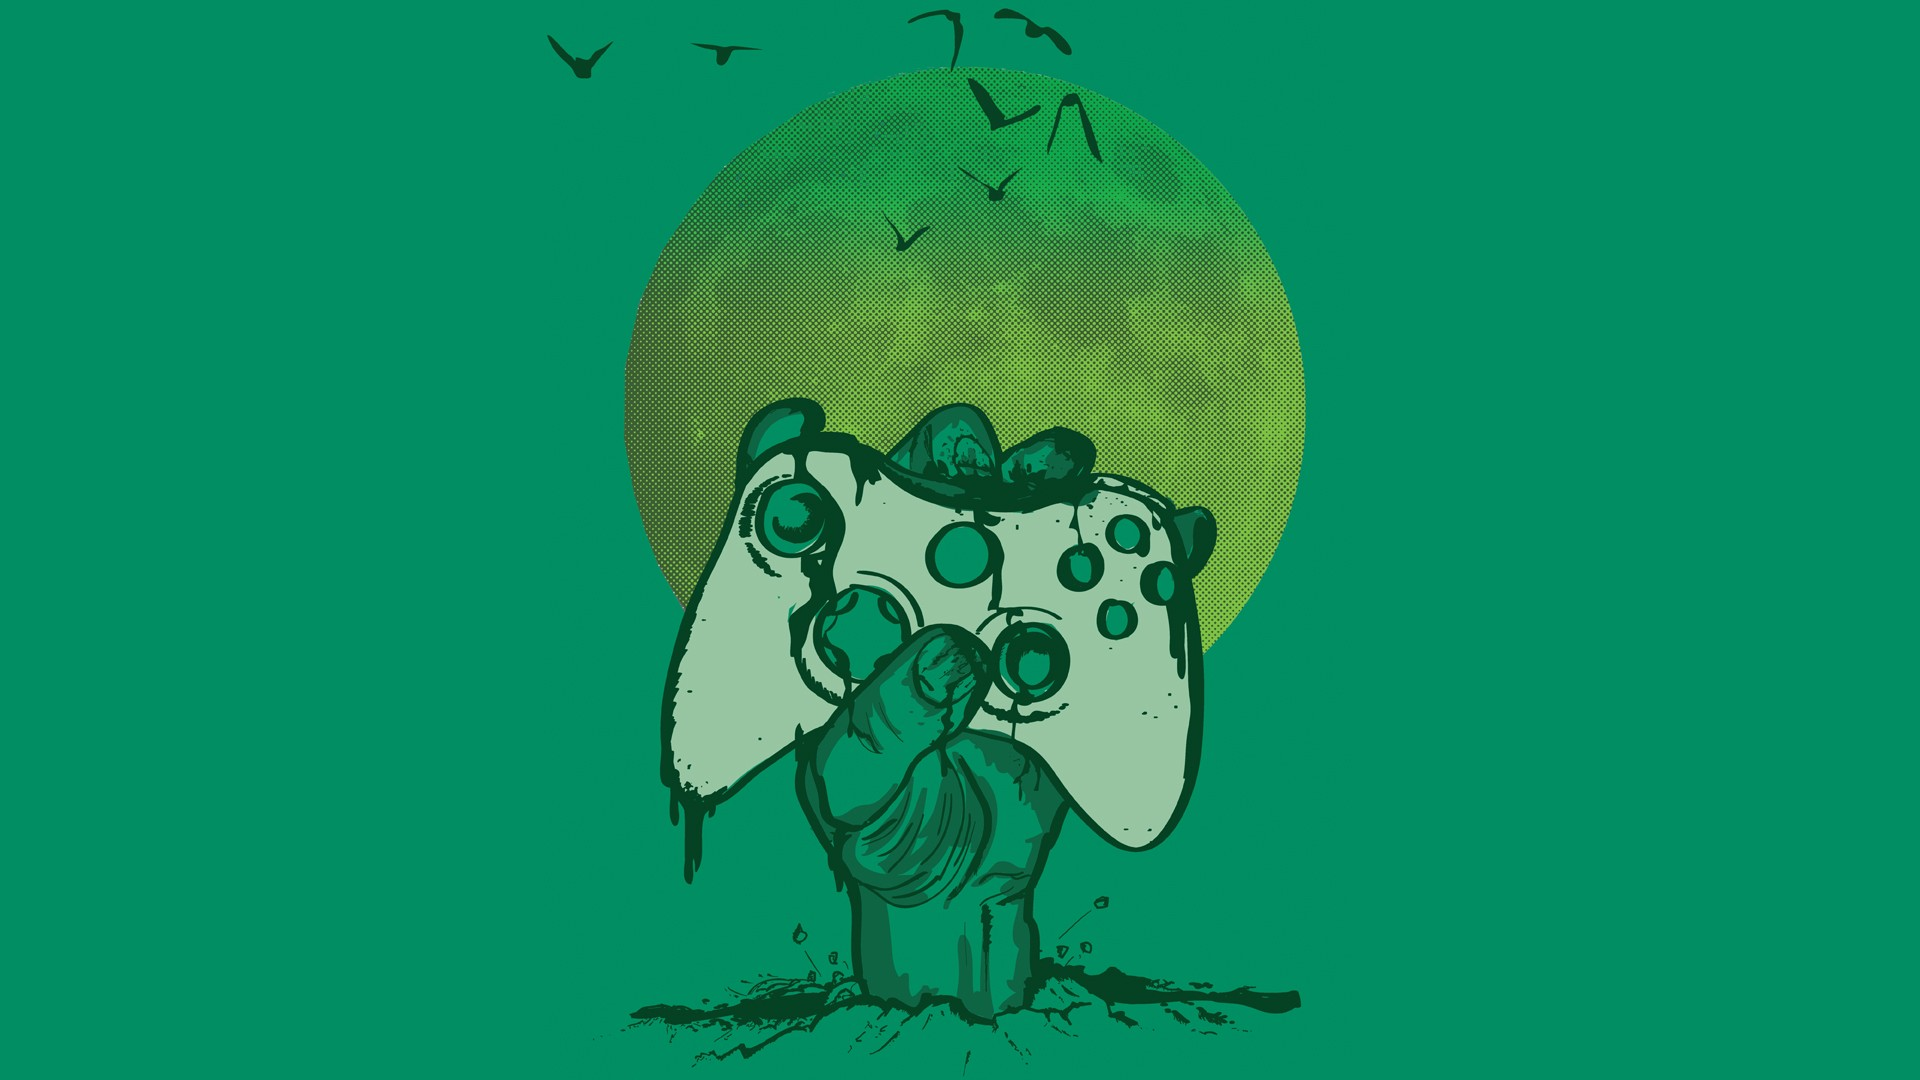 Xbox 360 Video Games Controllers Xbox Green Green Background Wallpaper Resolution 1920x1080 Id 145884 Wallha Com